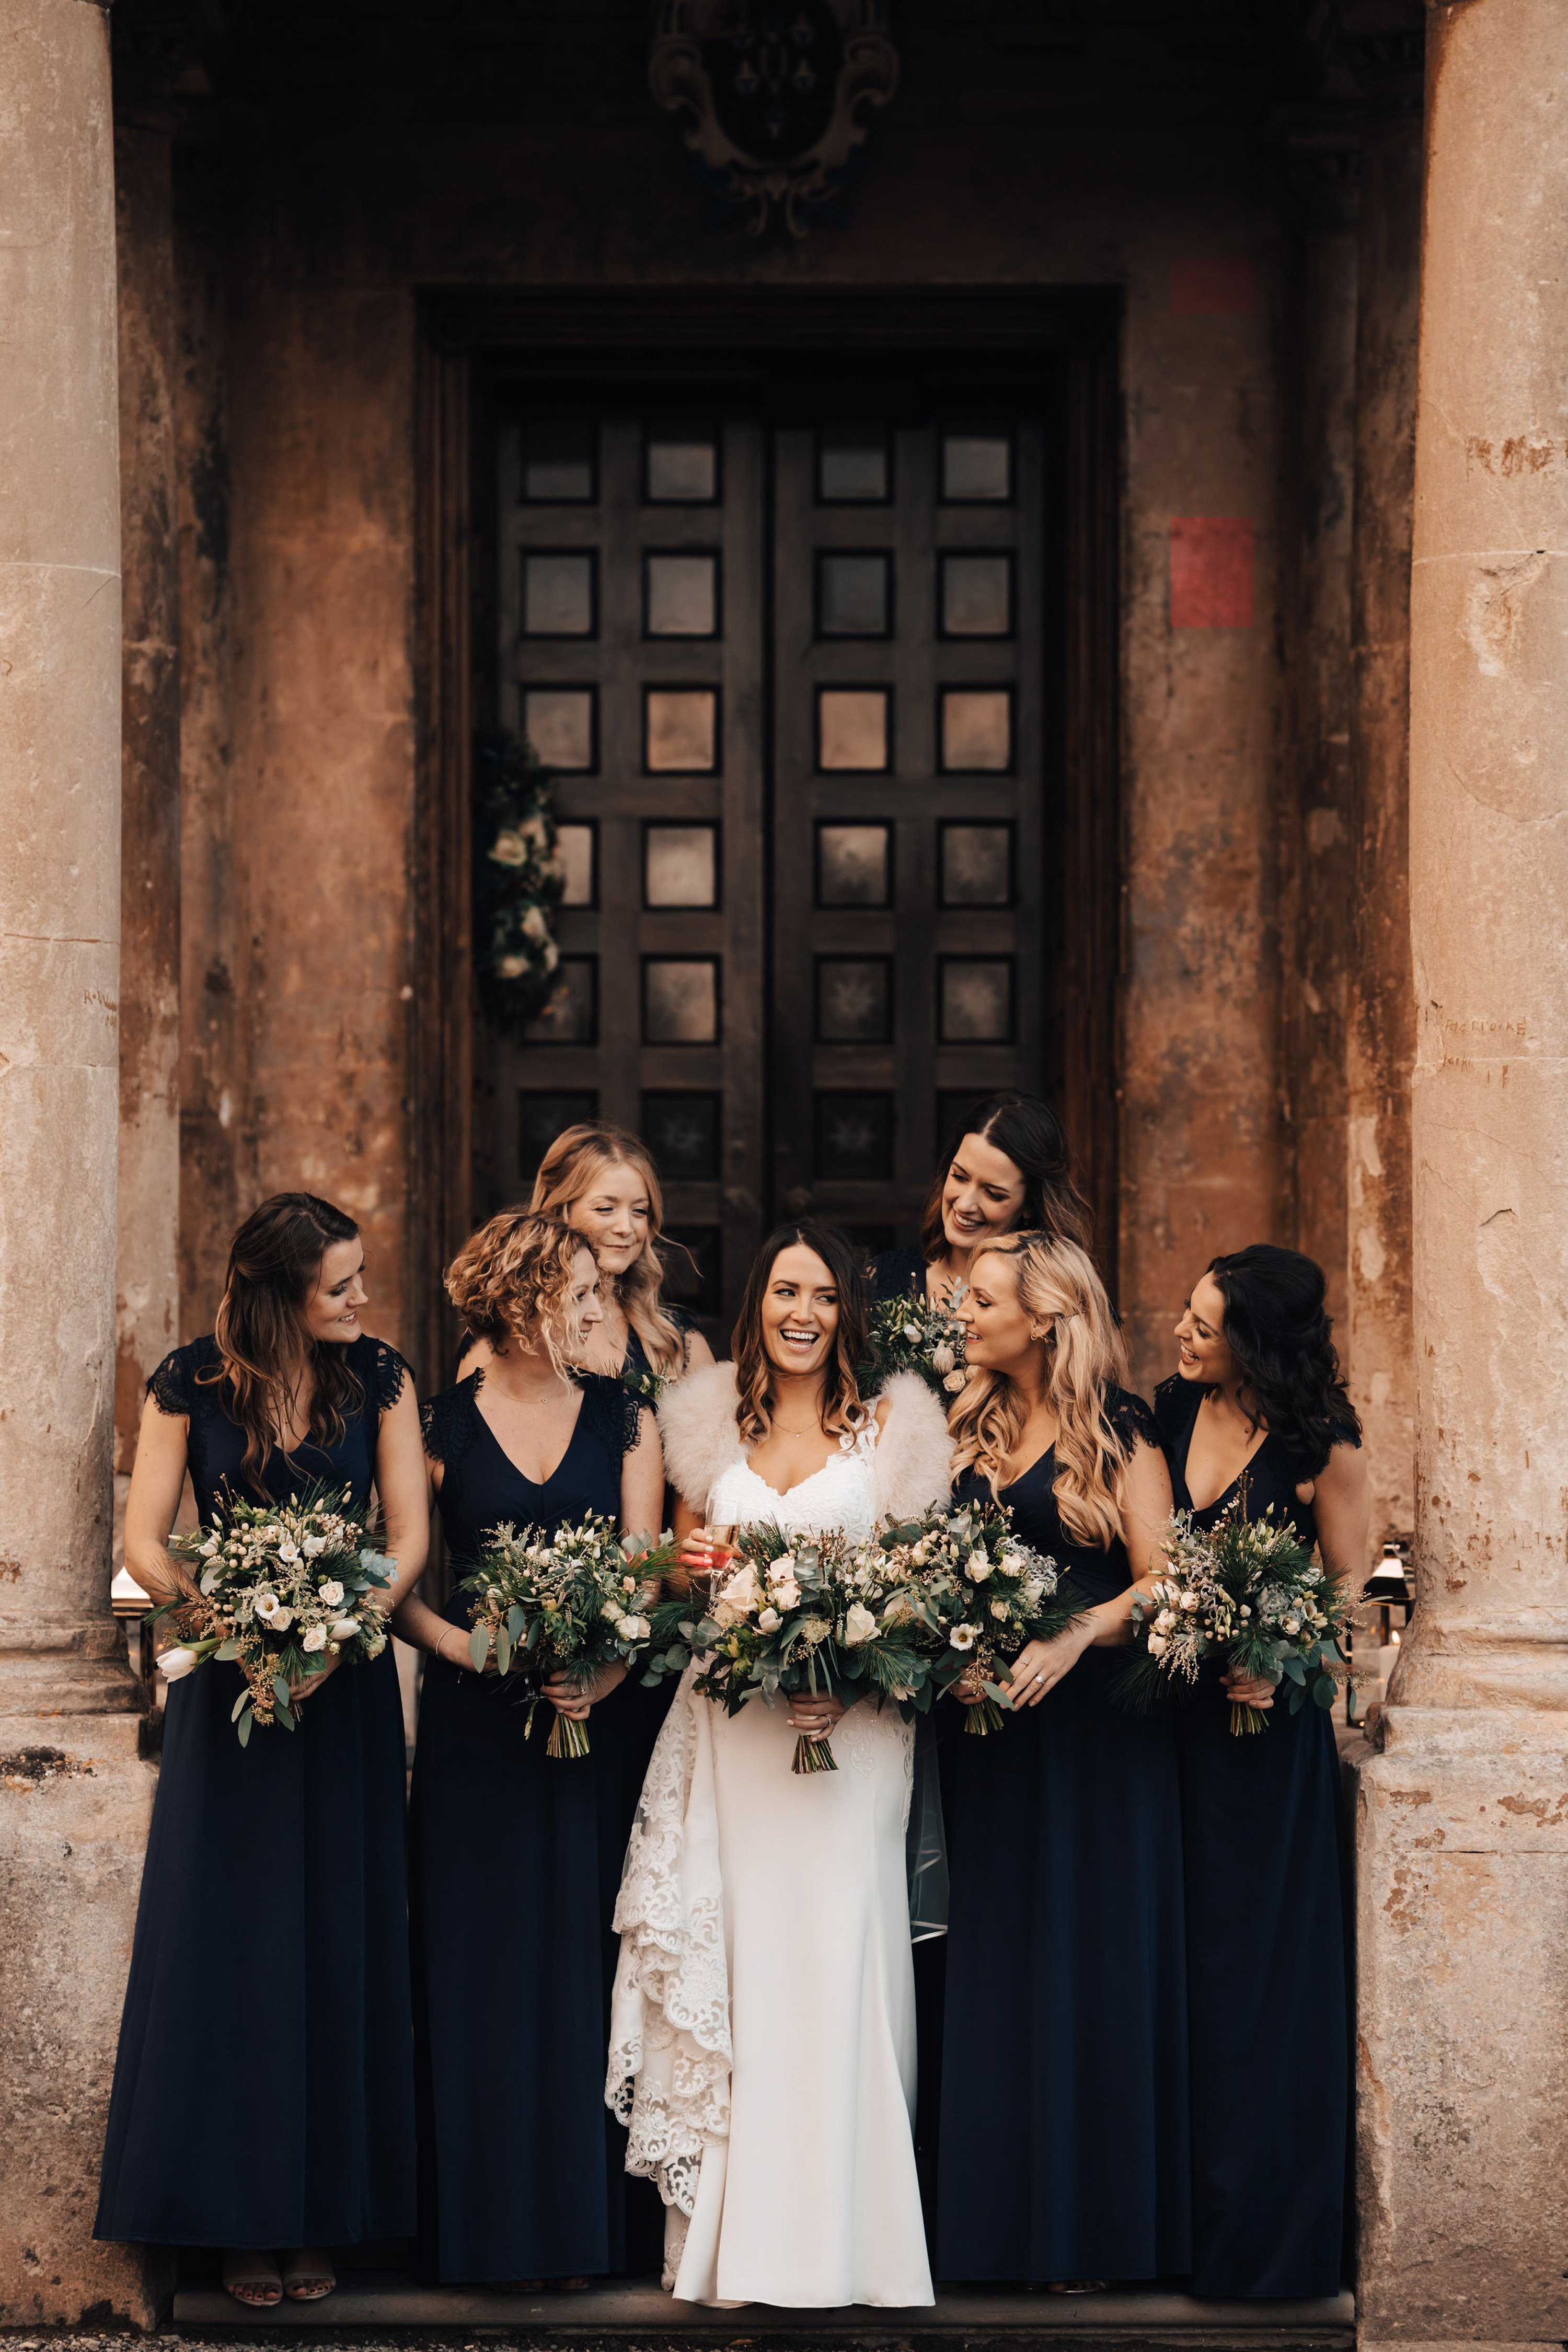 Black bridesmaids dresses at an autumn wedding at elmore court